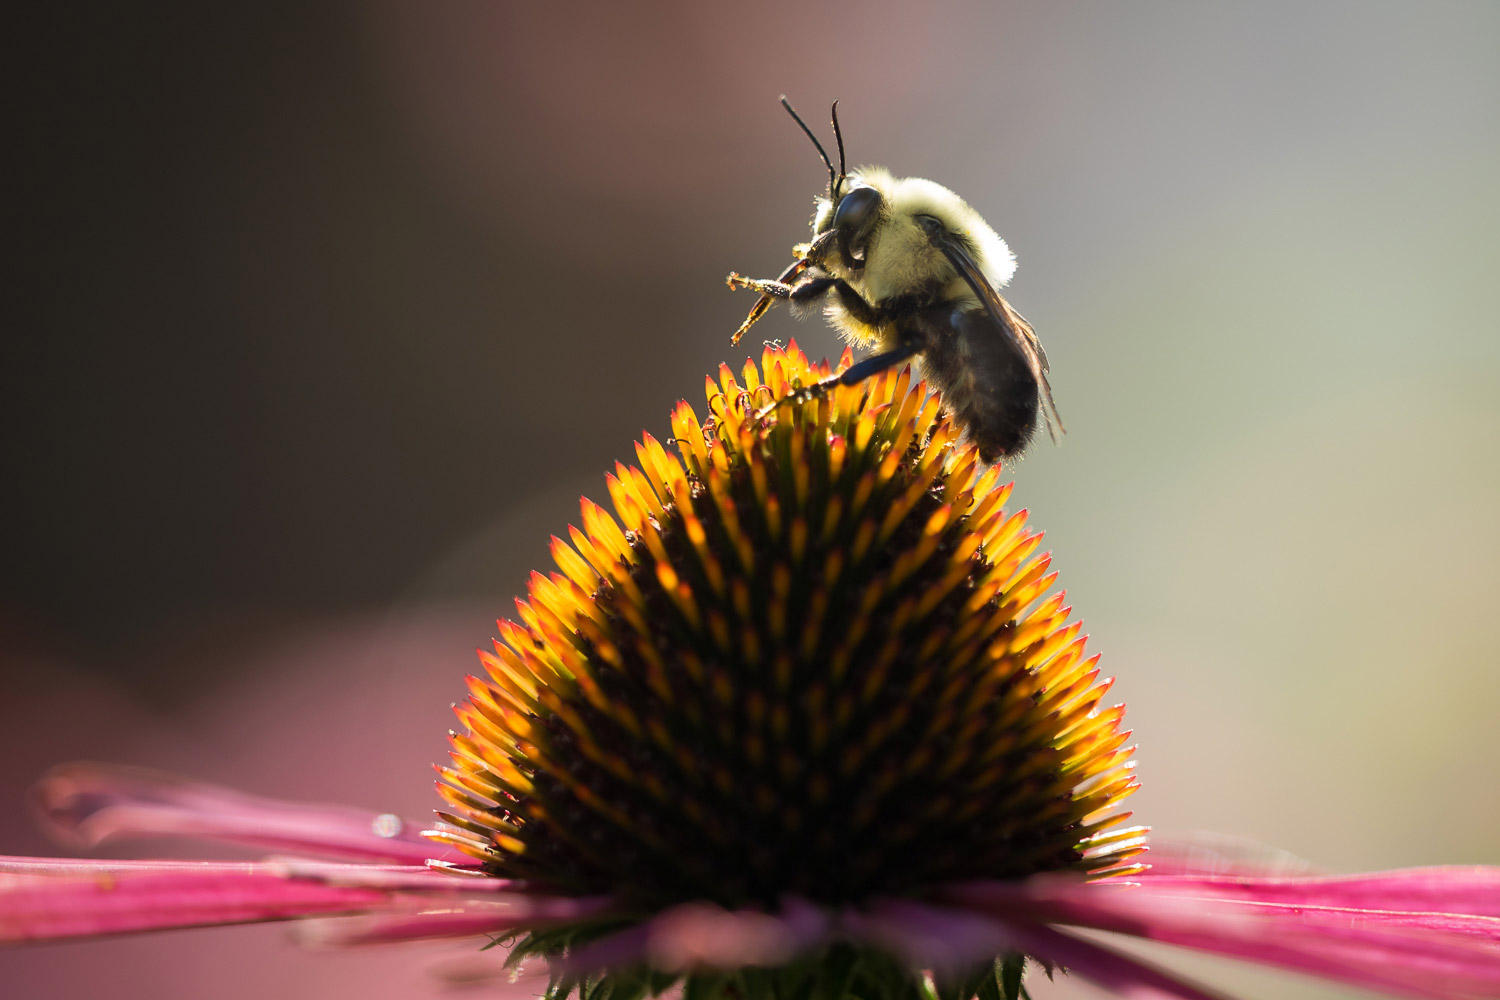 A bee on the stigma of a pink flower